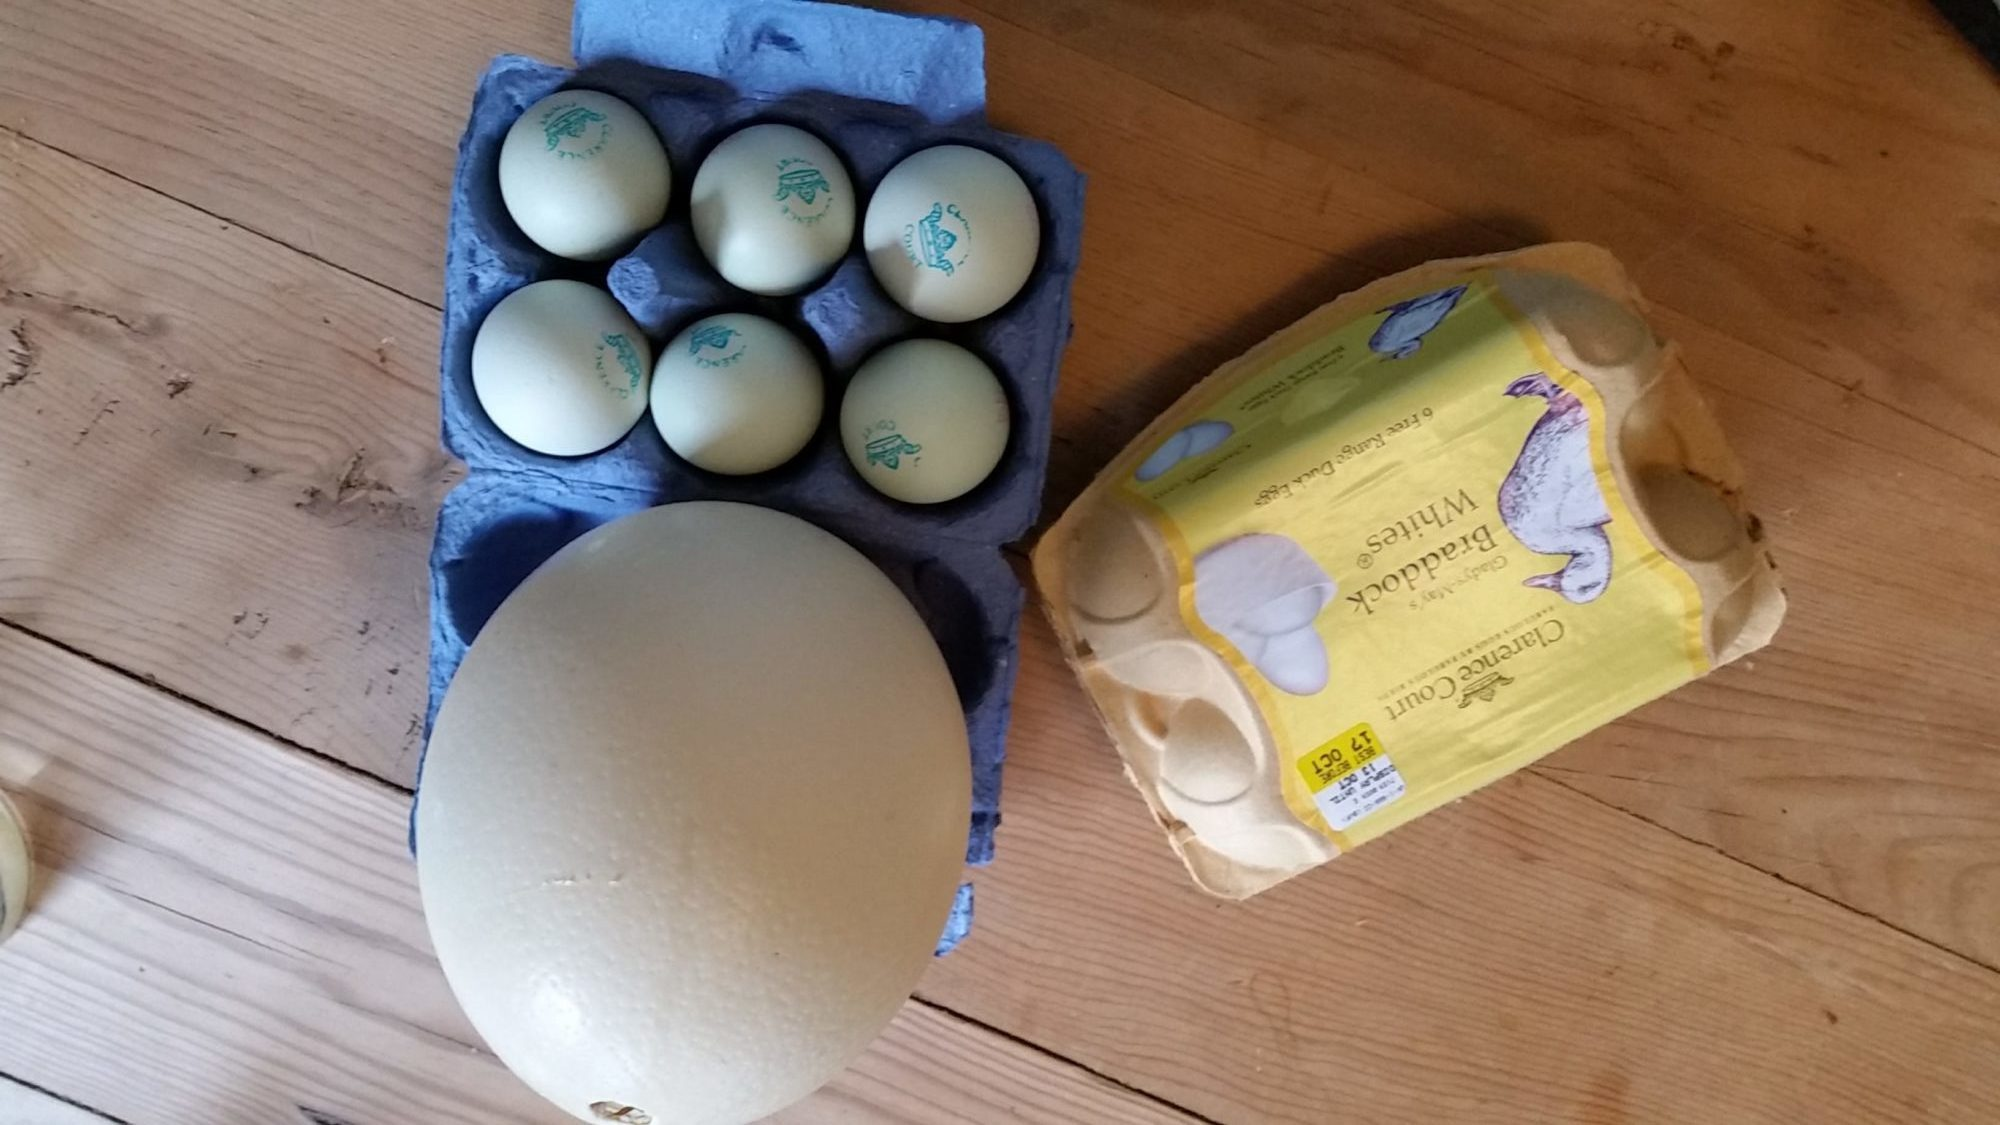 heritage chicken eggs after morning walk